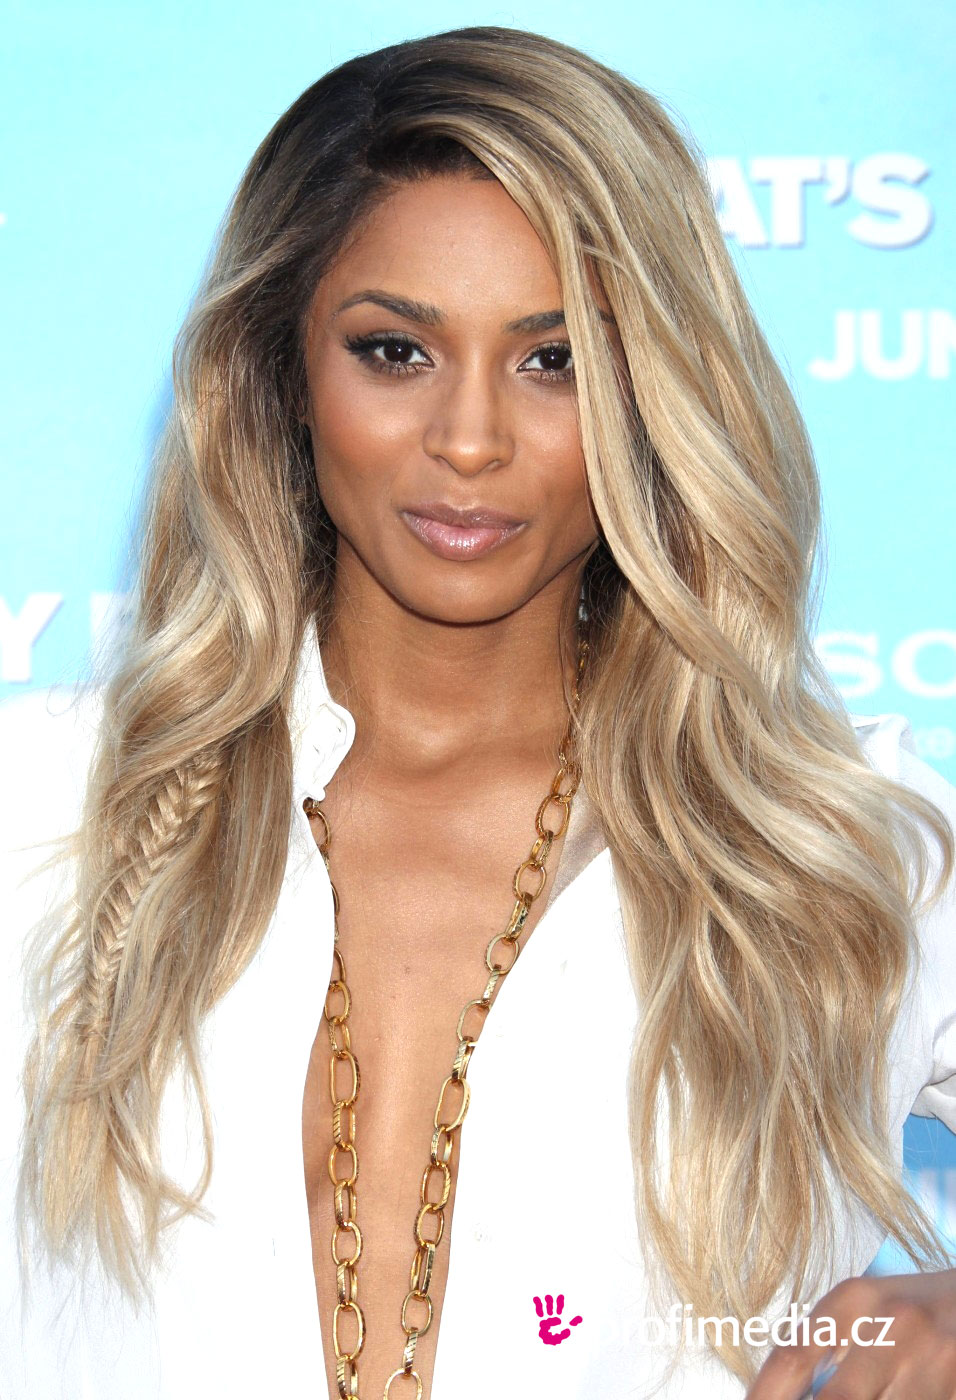 Ciara Hairstyles Fair Image From Httpwwwhawtcelebswpcontentuploads201210